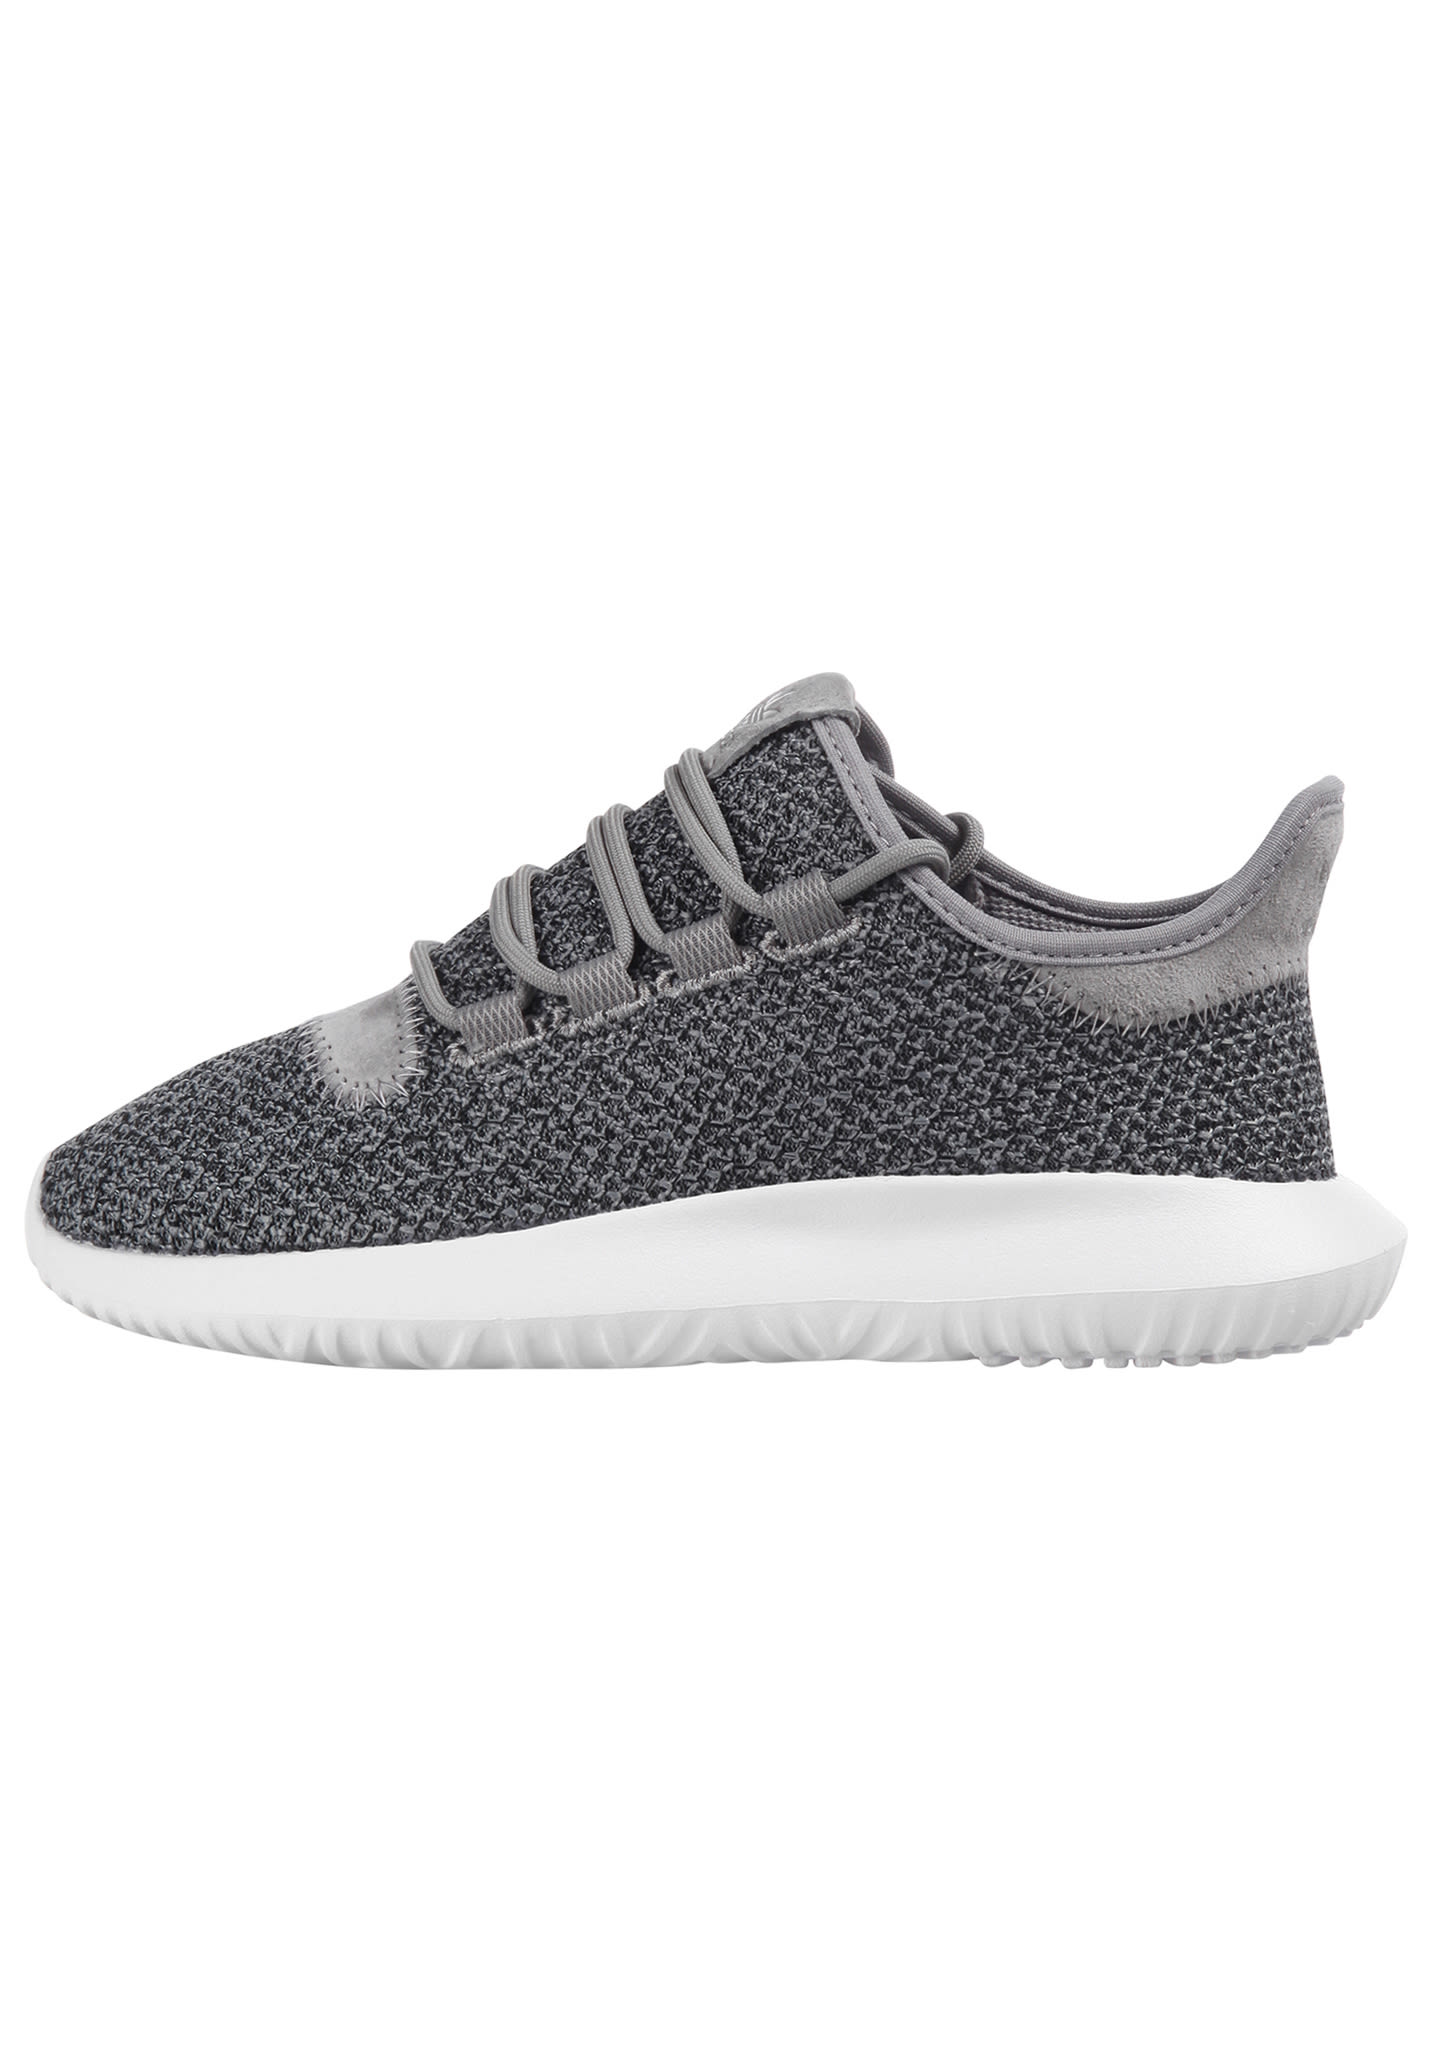 adidas Originals Tubular Shadow - Sneaker für Damen - Grau